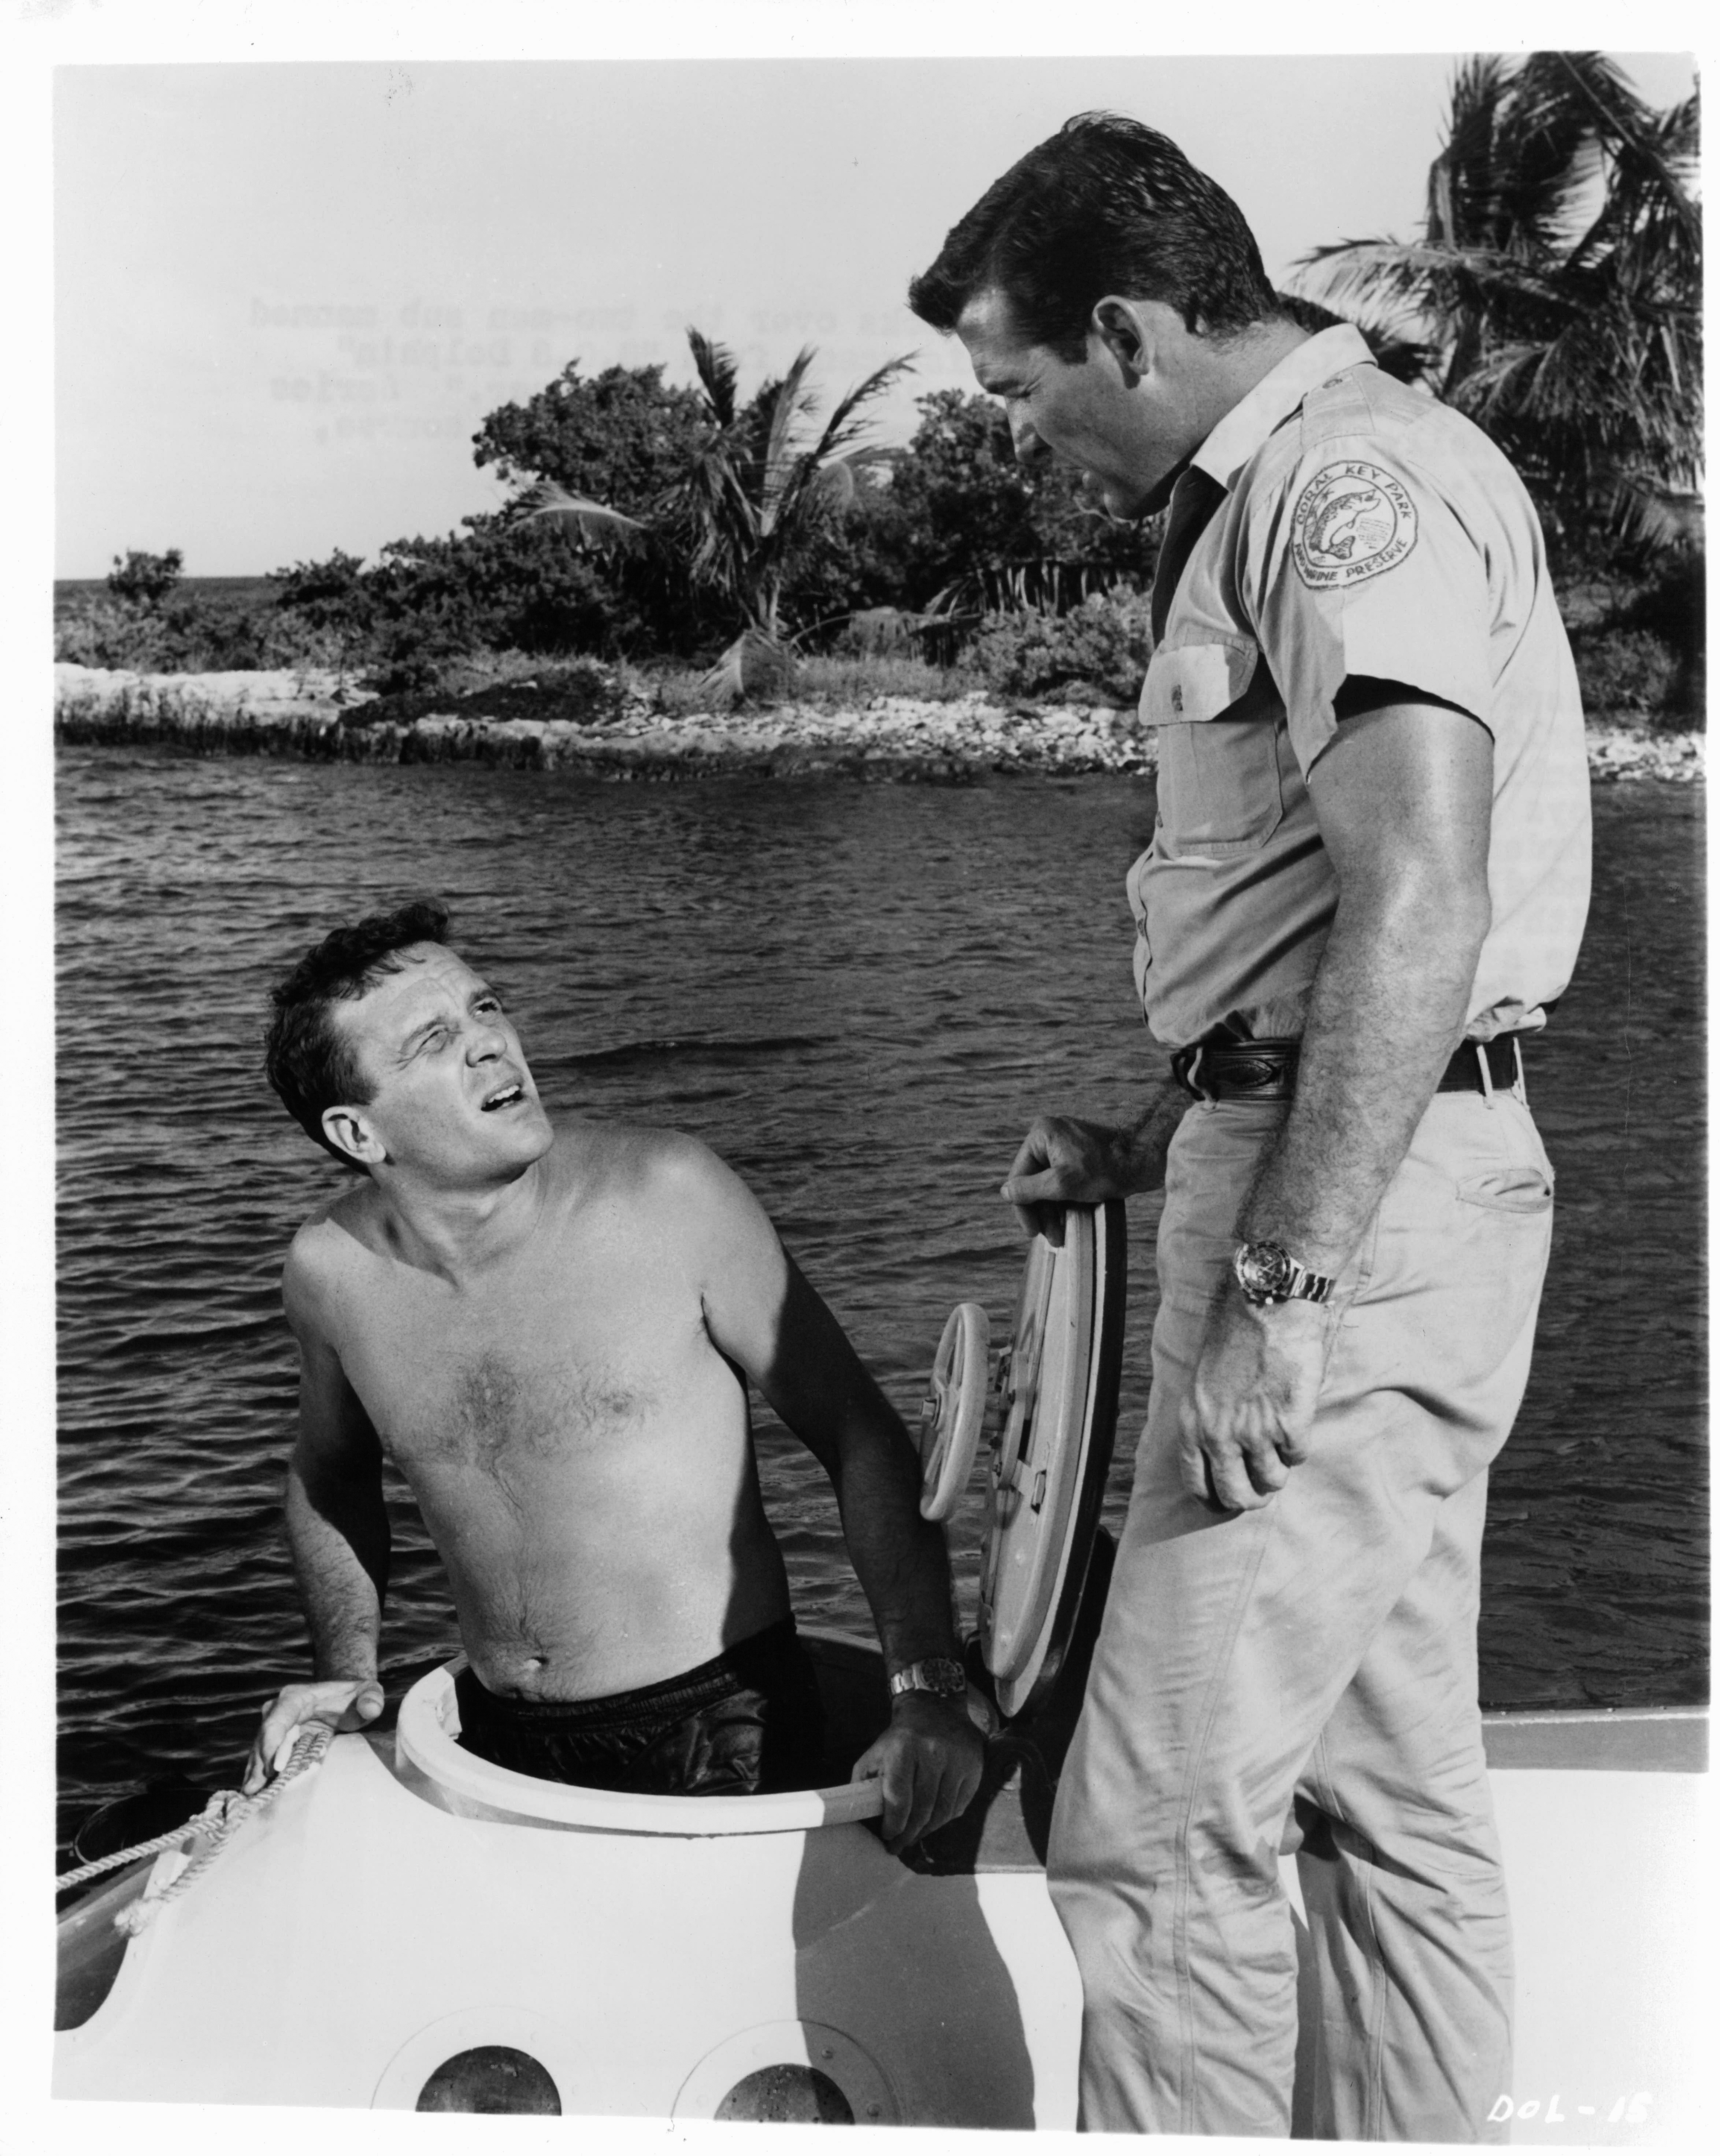 Brian Kelly and John Lasell in Flipper (1964)